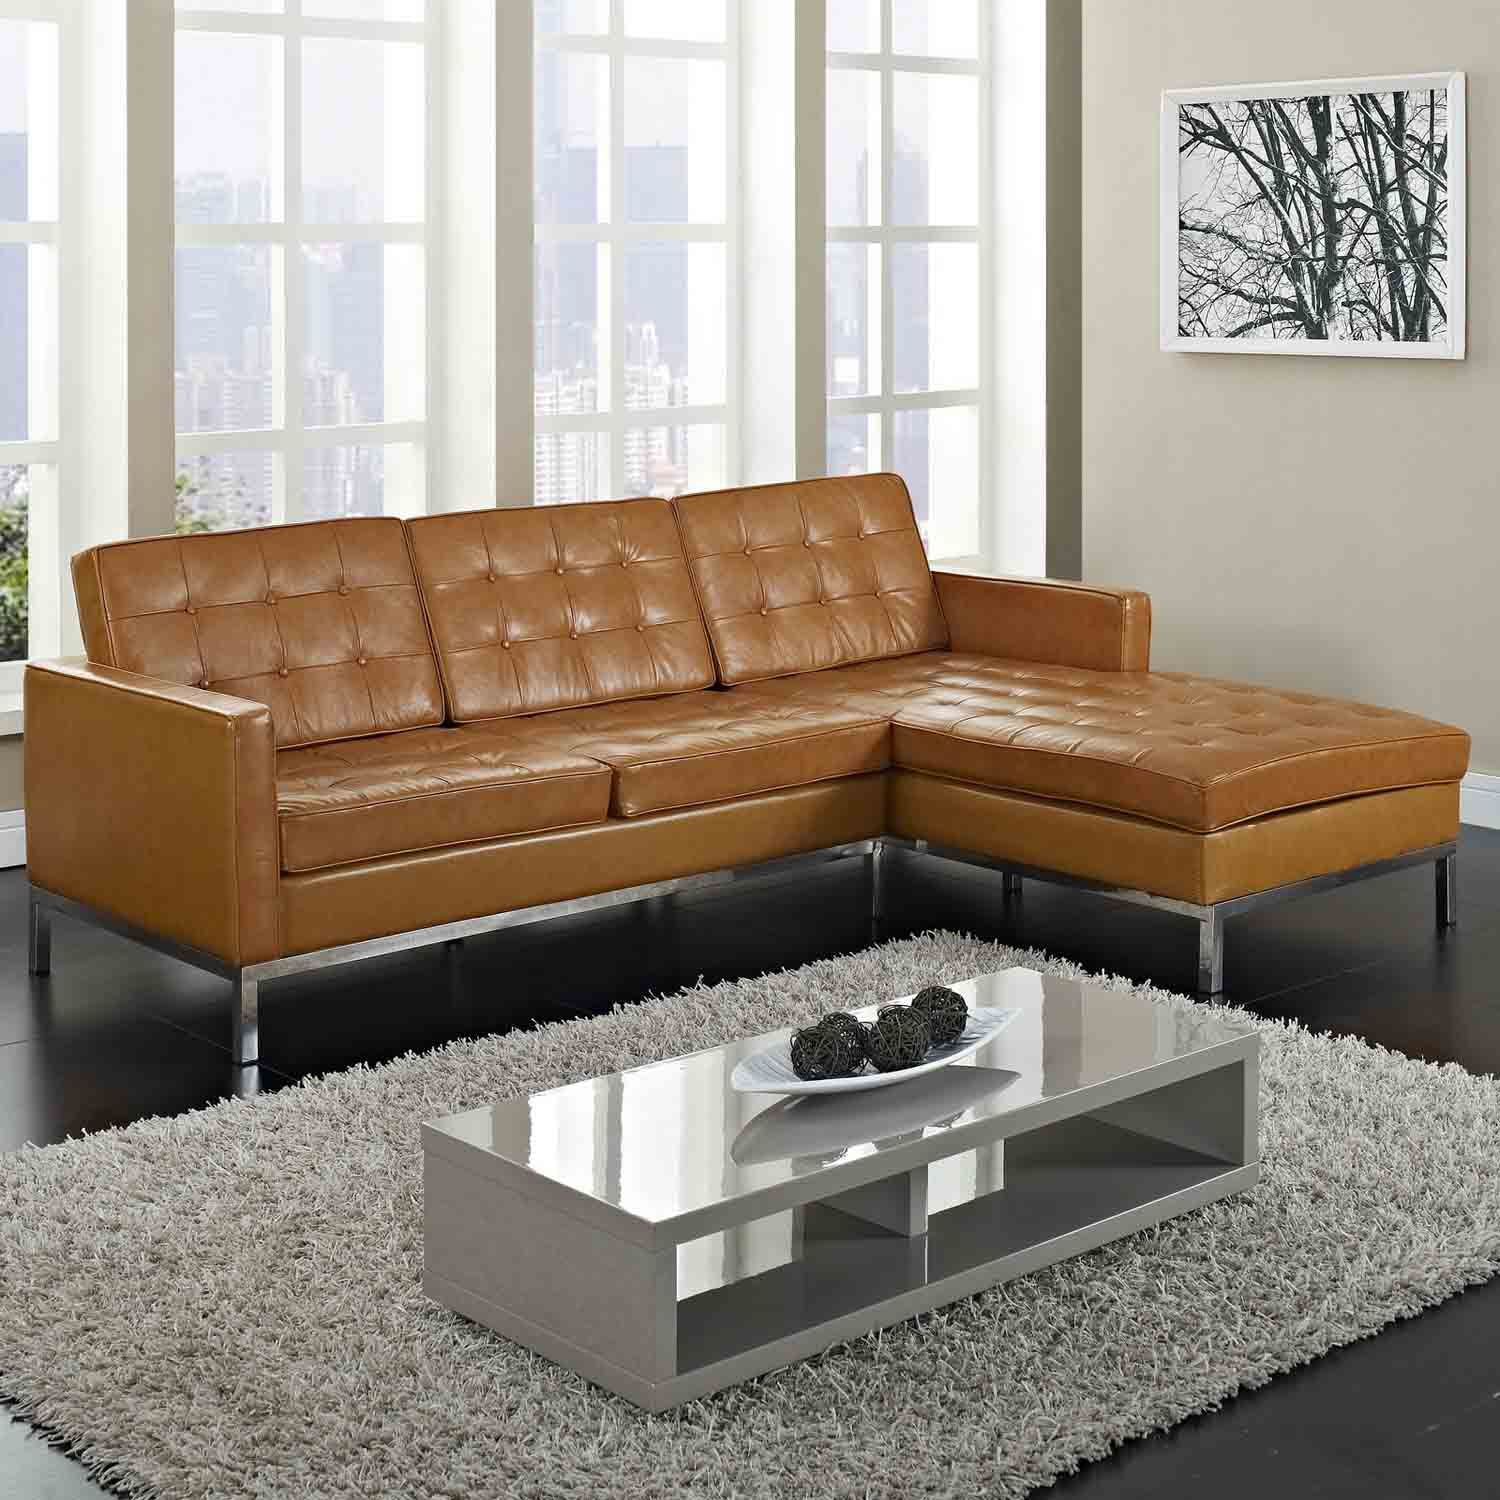 Modway loft right arm leather sectional sofa tan mw eei 252 tan at homelement com